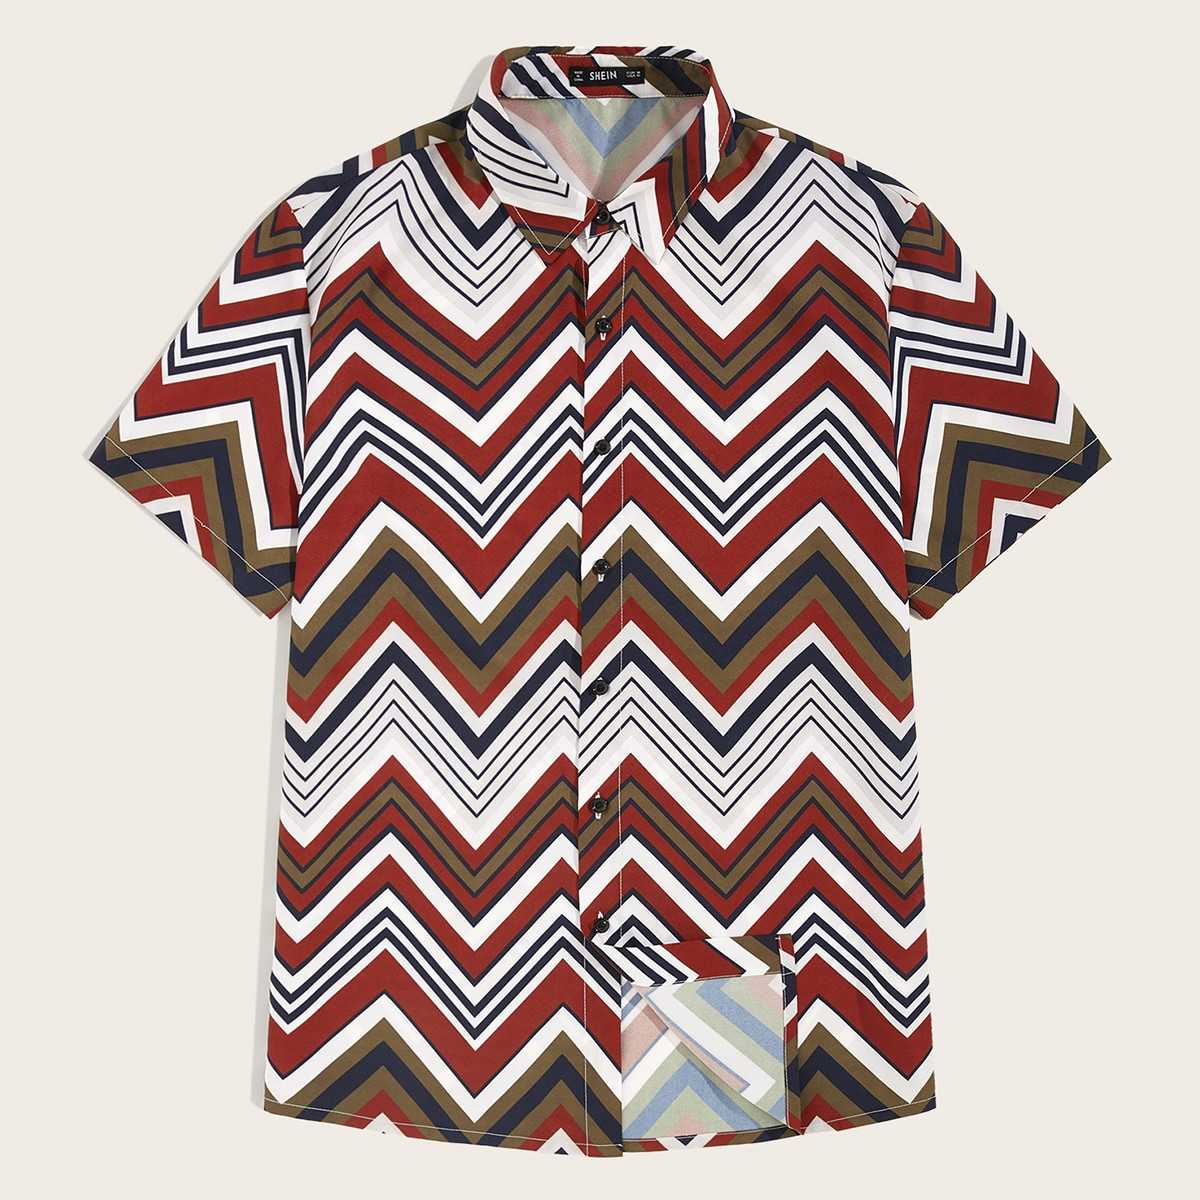 Guys Contrast Stitch Chevron Shirt in Multicolor by ROMWE on GOOFASH